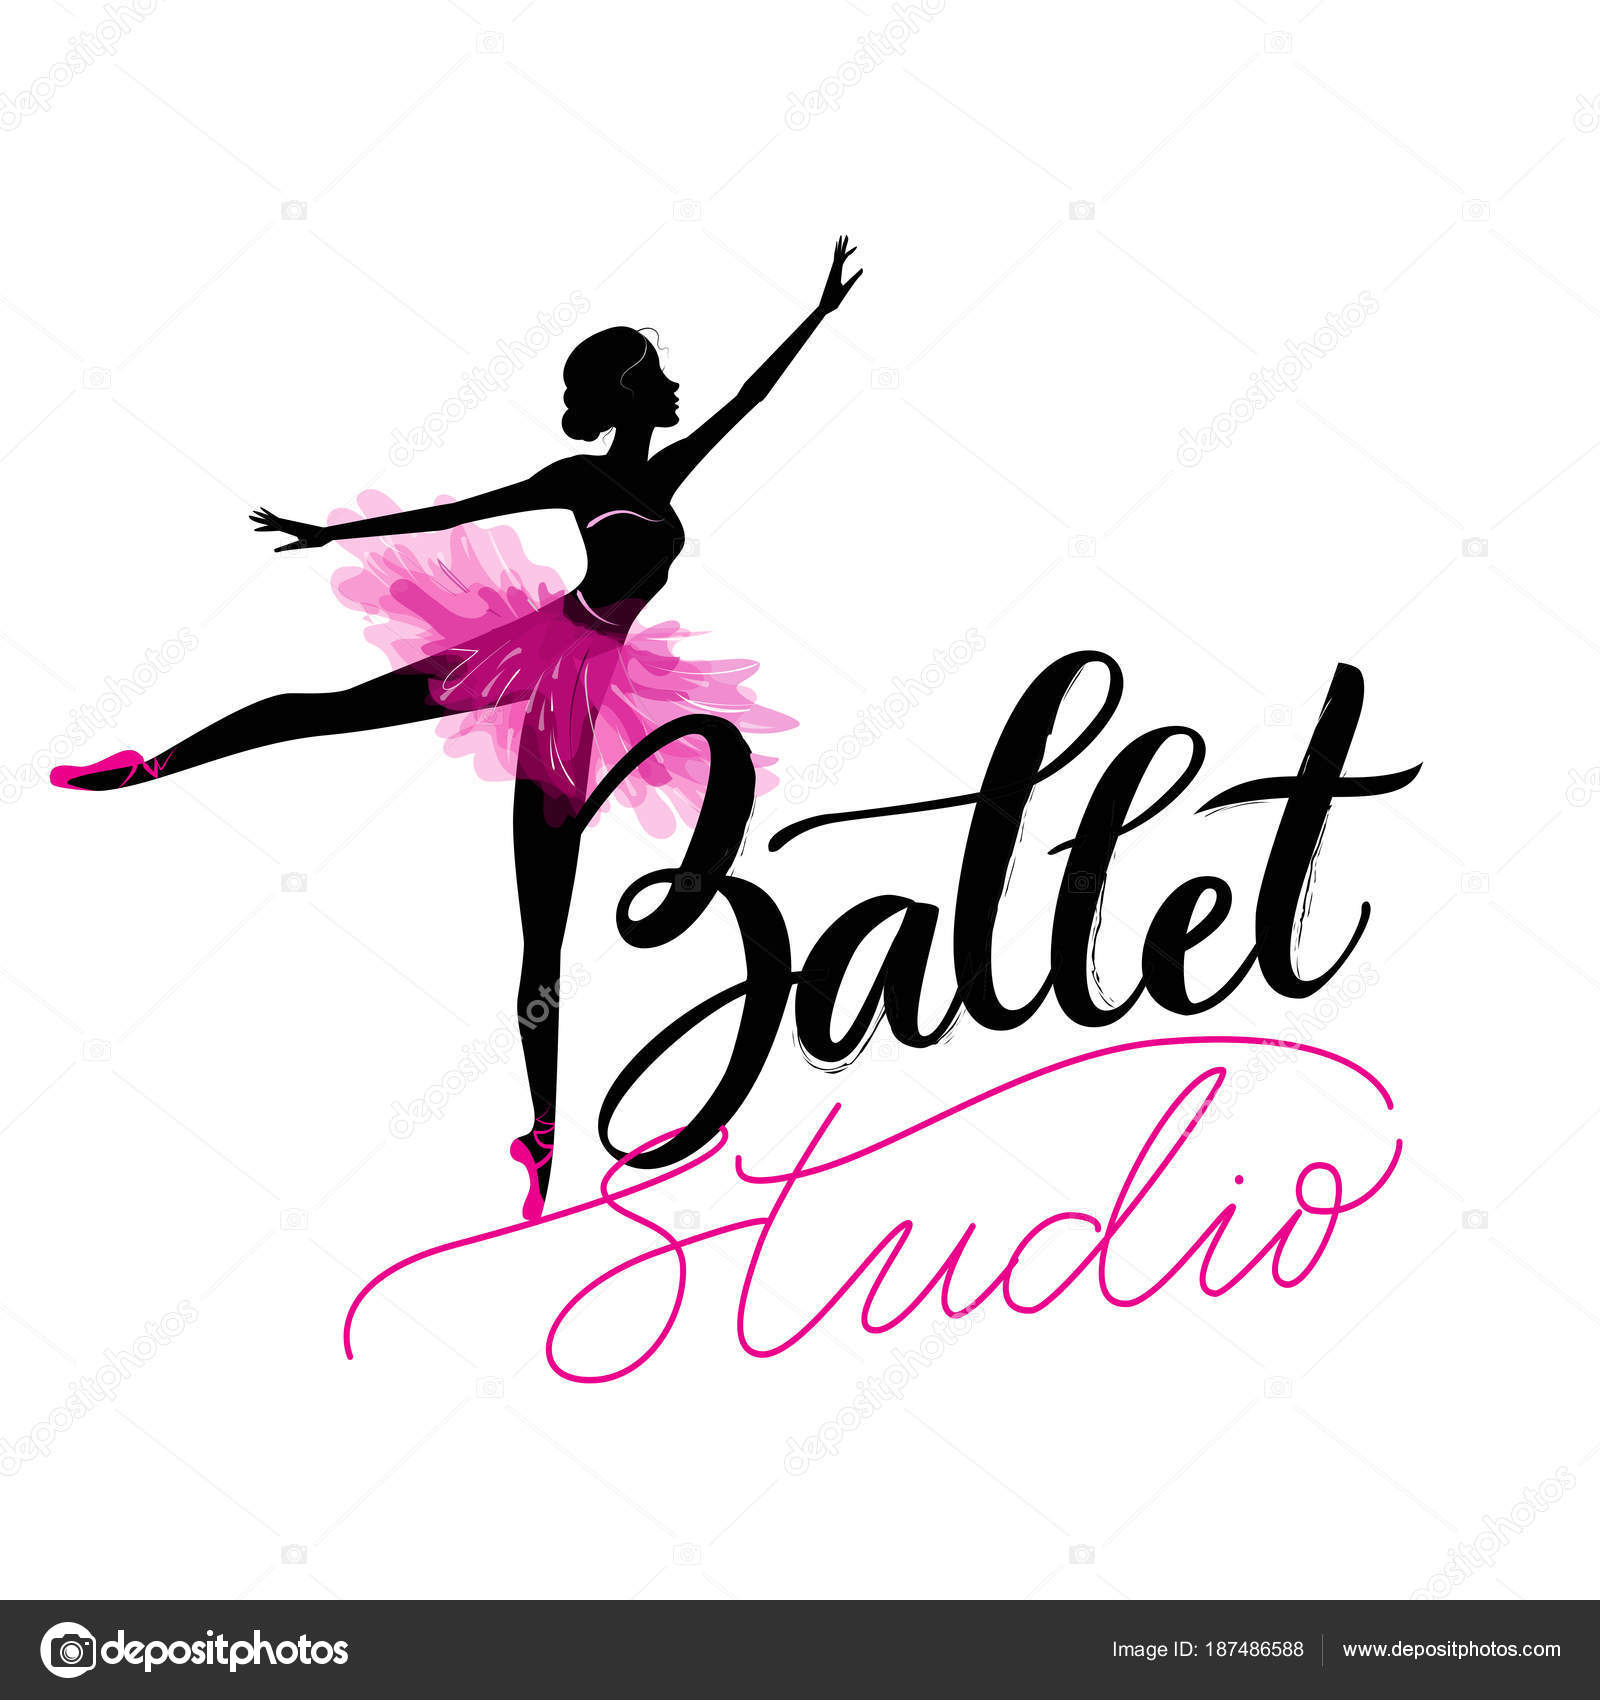 Logo Hand Written Sign For Ballet Or Dance Studio Silhouette Of Young Dancer And Modern Lettering Can Be Used Signage Posters Advertising